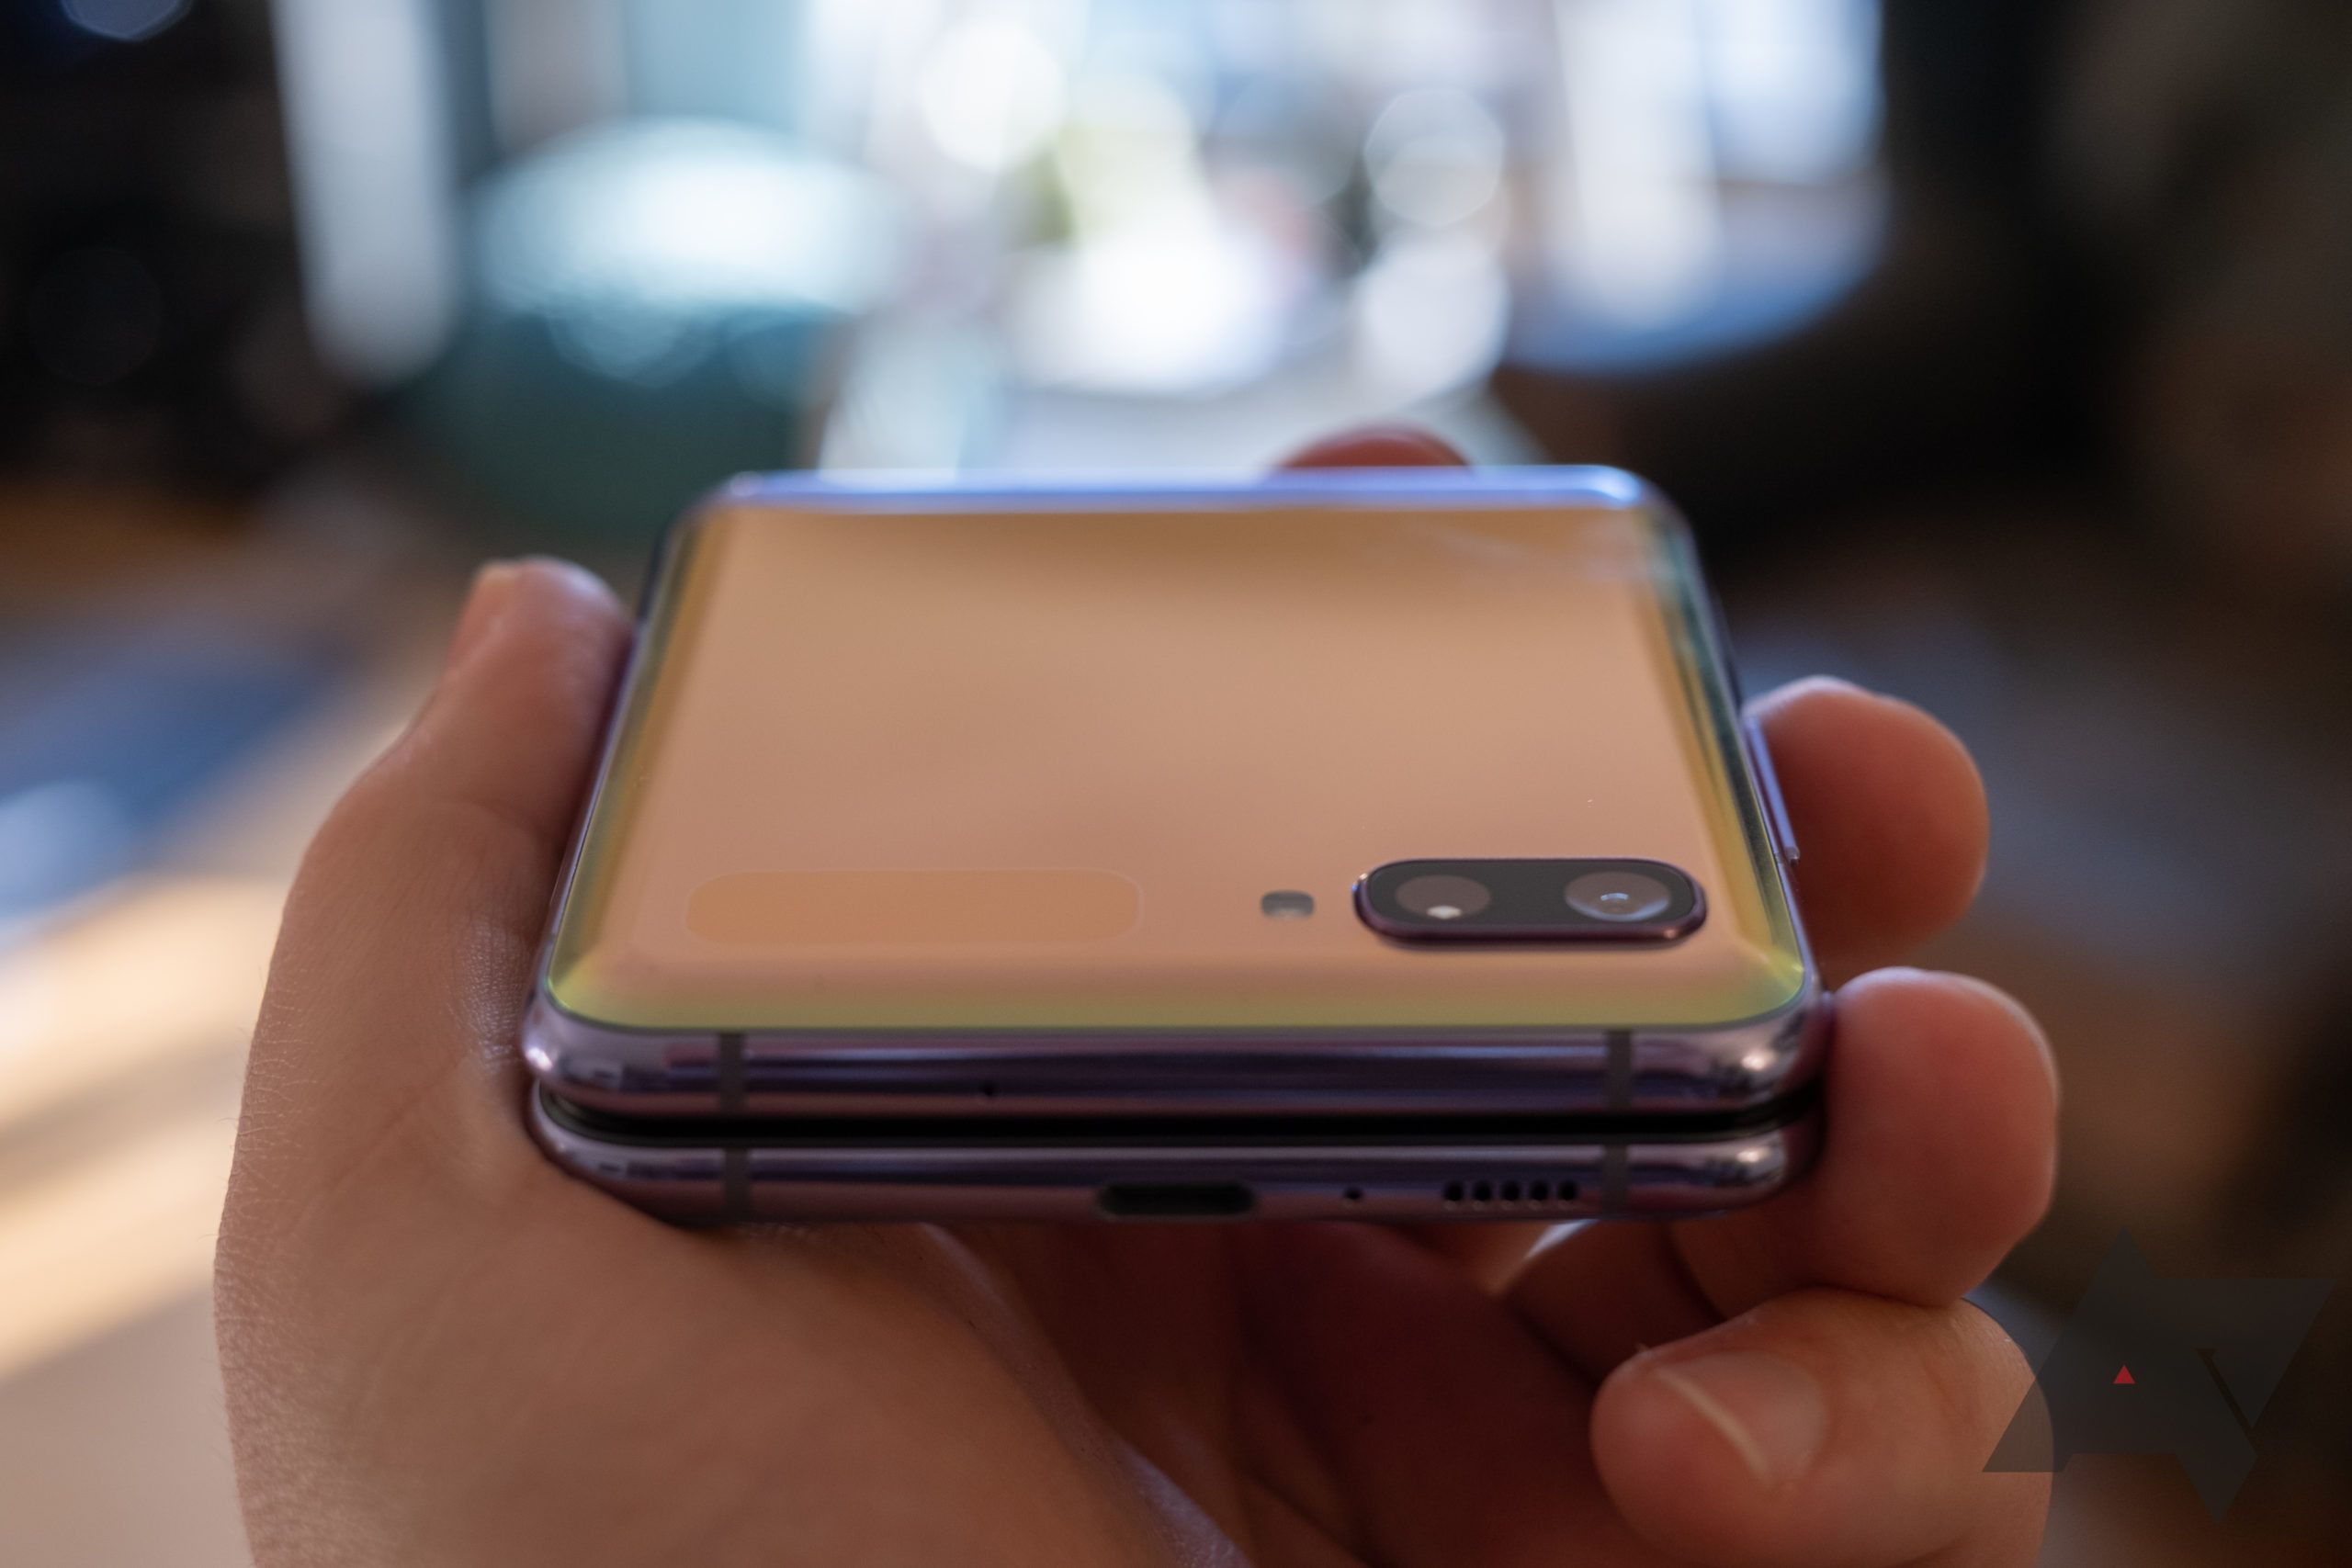 Galaxy Z Flip closed at an angle, showing off the color-changing attributes.